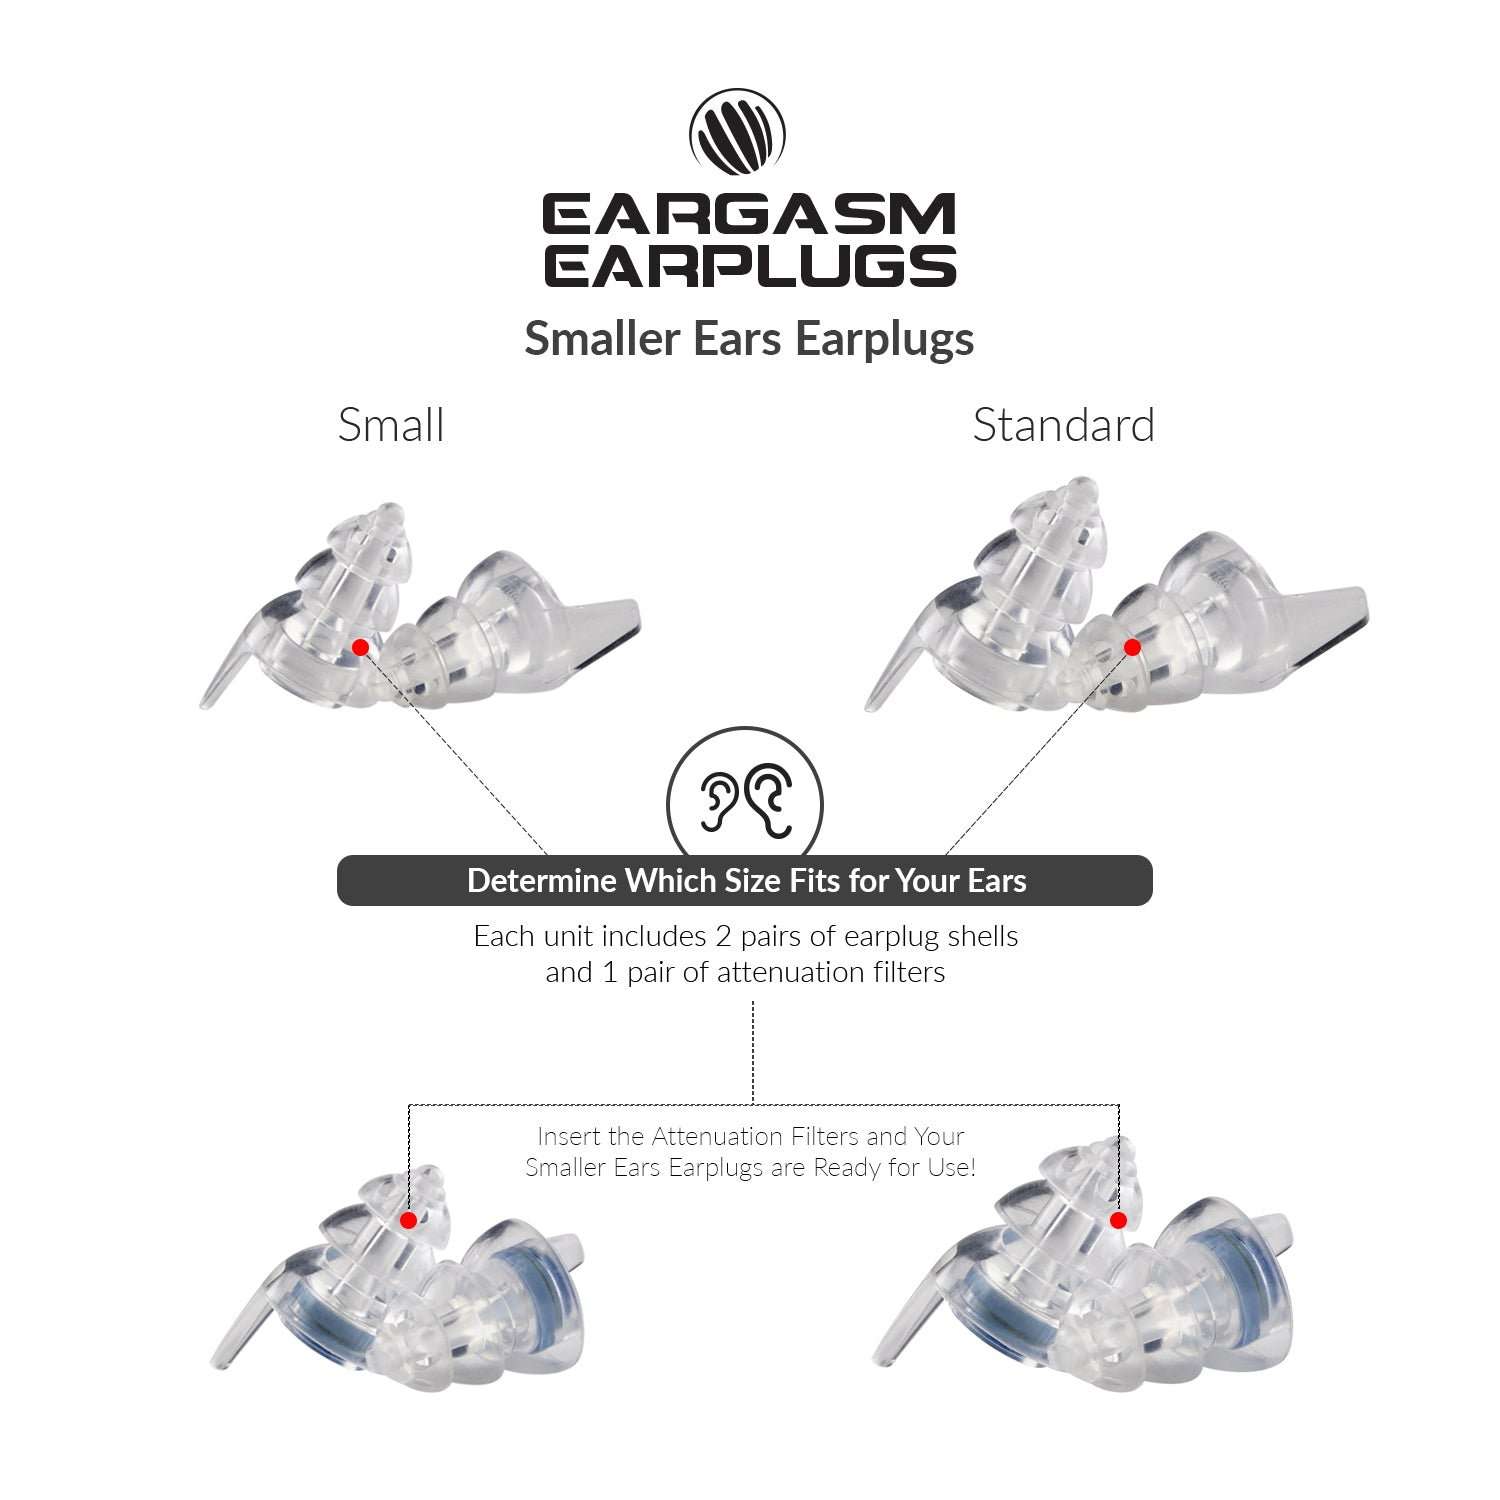 Eargasm Smaller Ears Earplugs